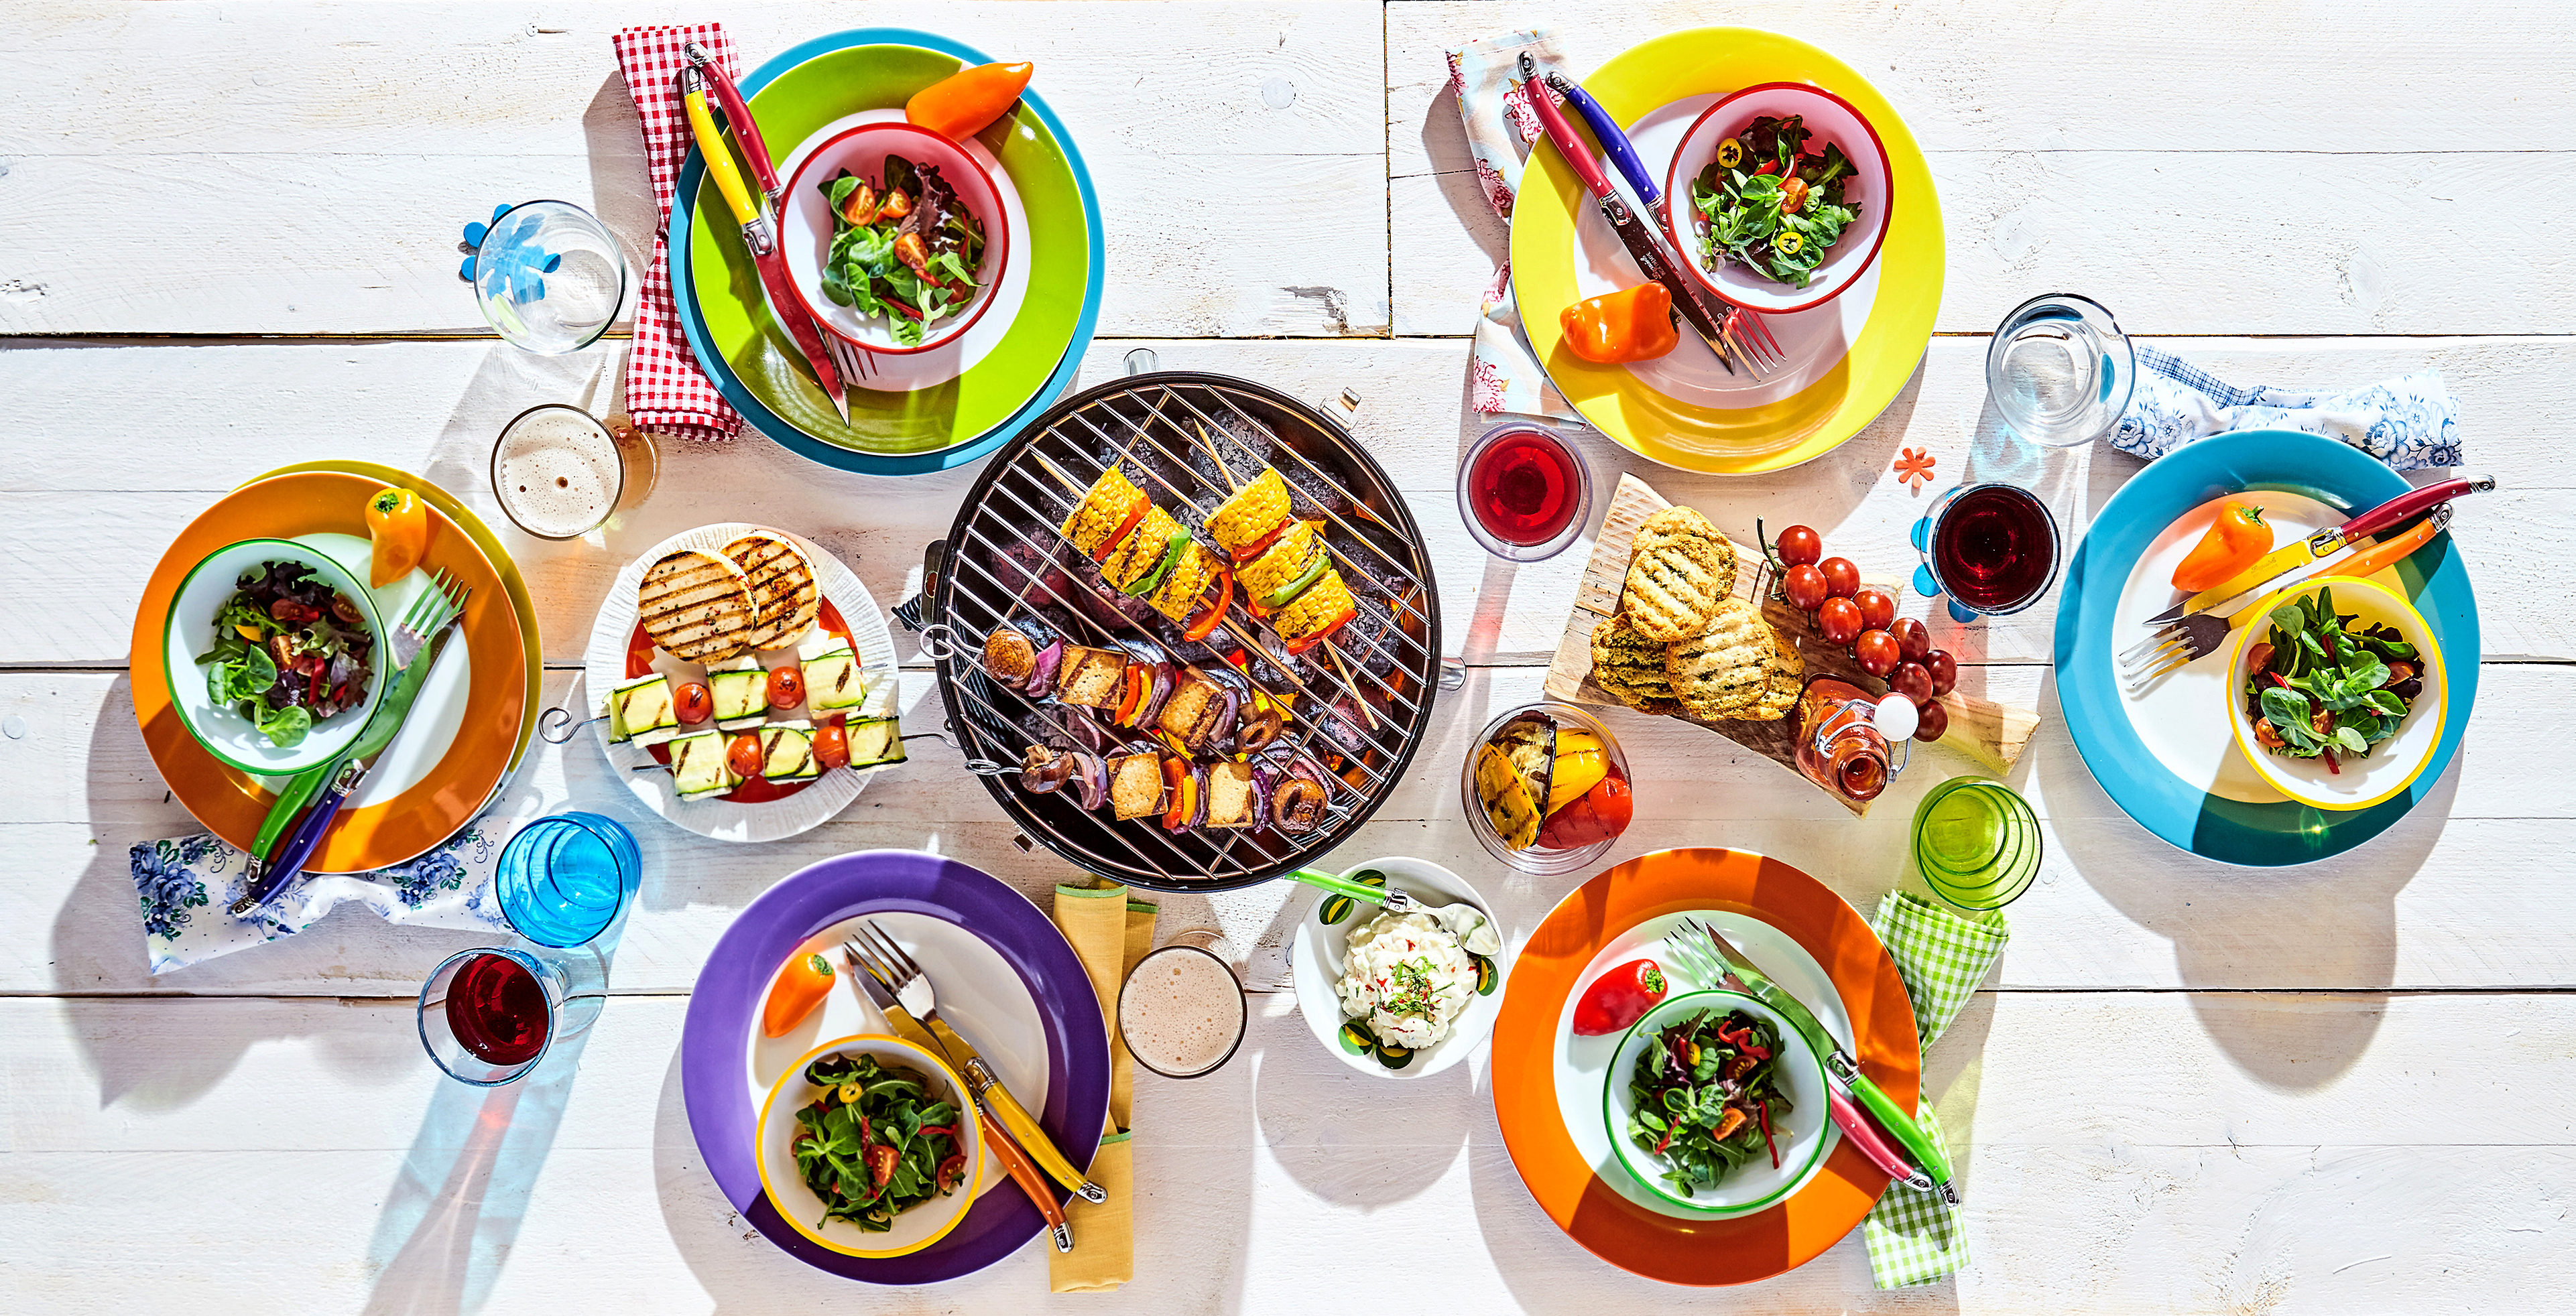 A selection of summer foods.